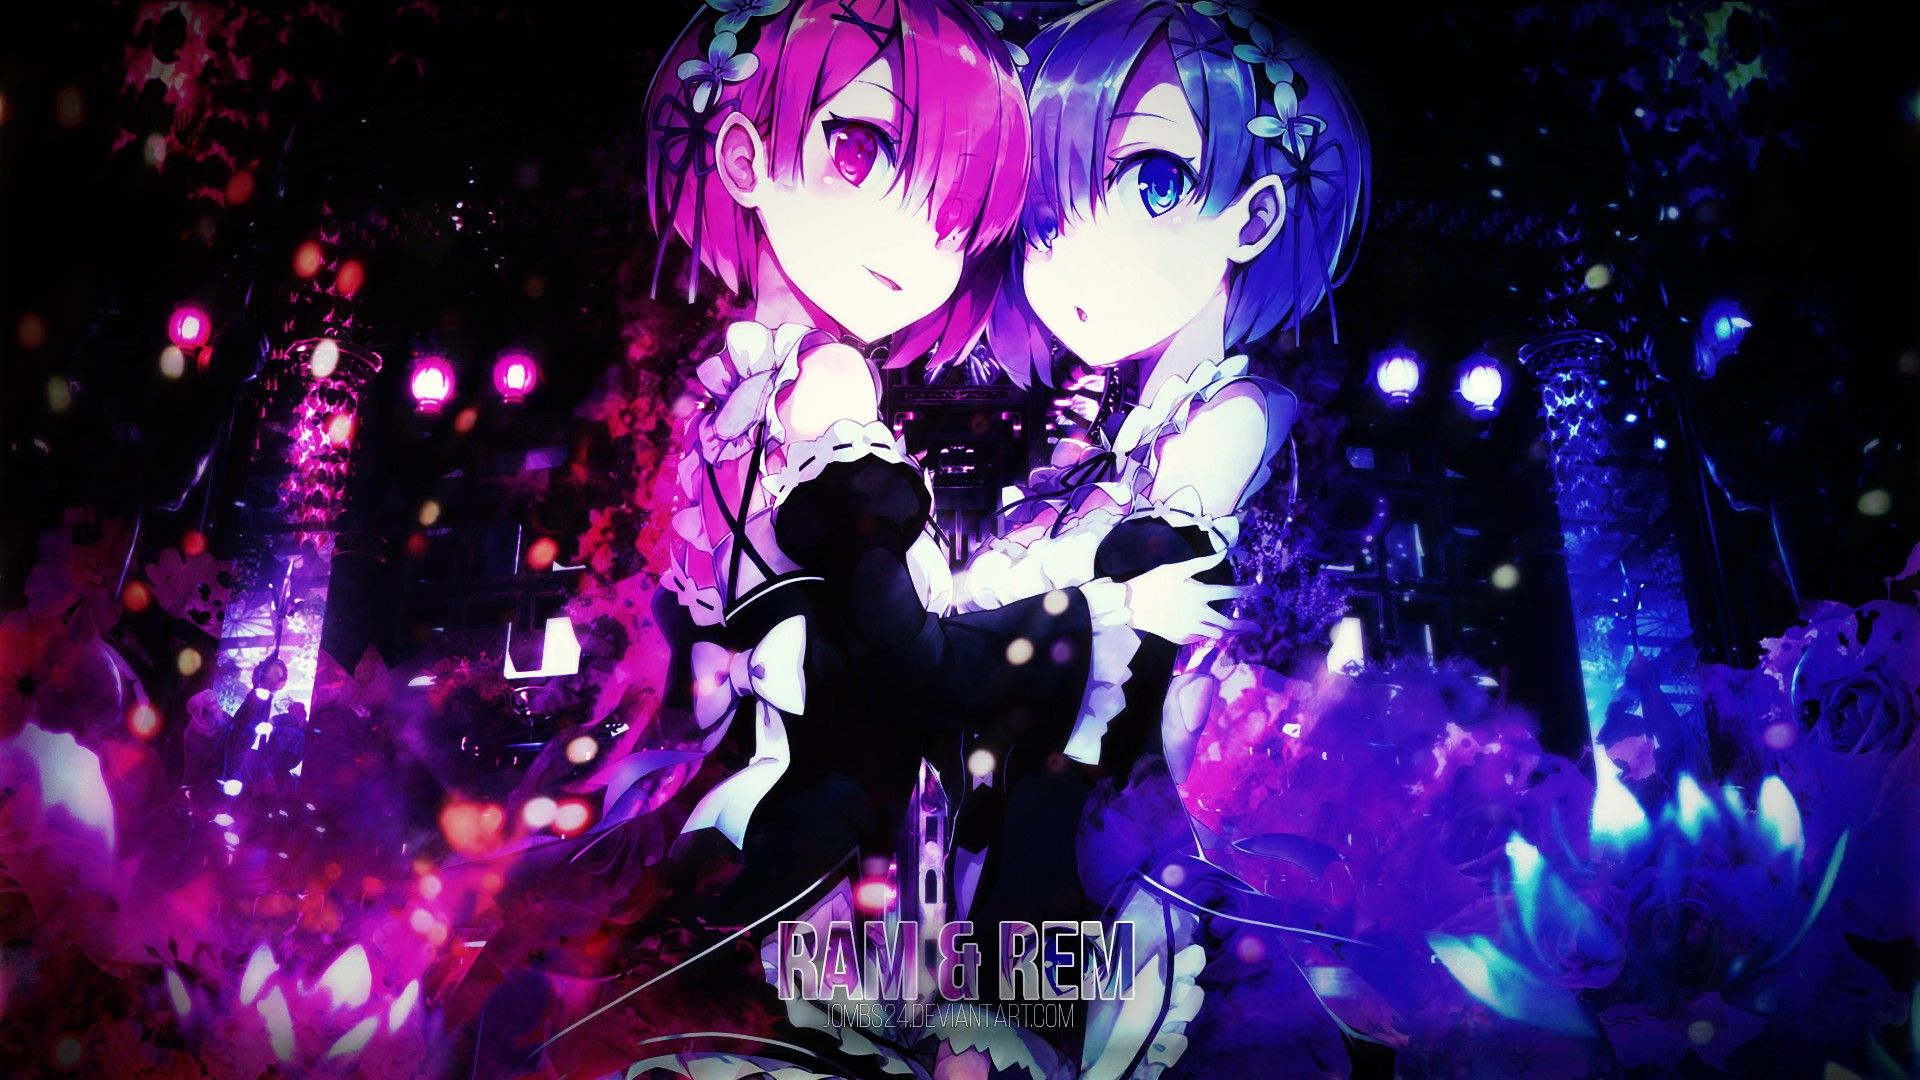 Re Zero Wallpaper Rem And Ram Re Zero Wallpaper Anime Anime